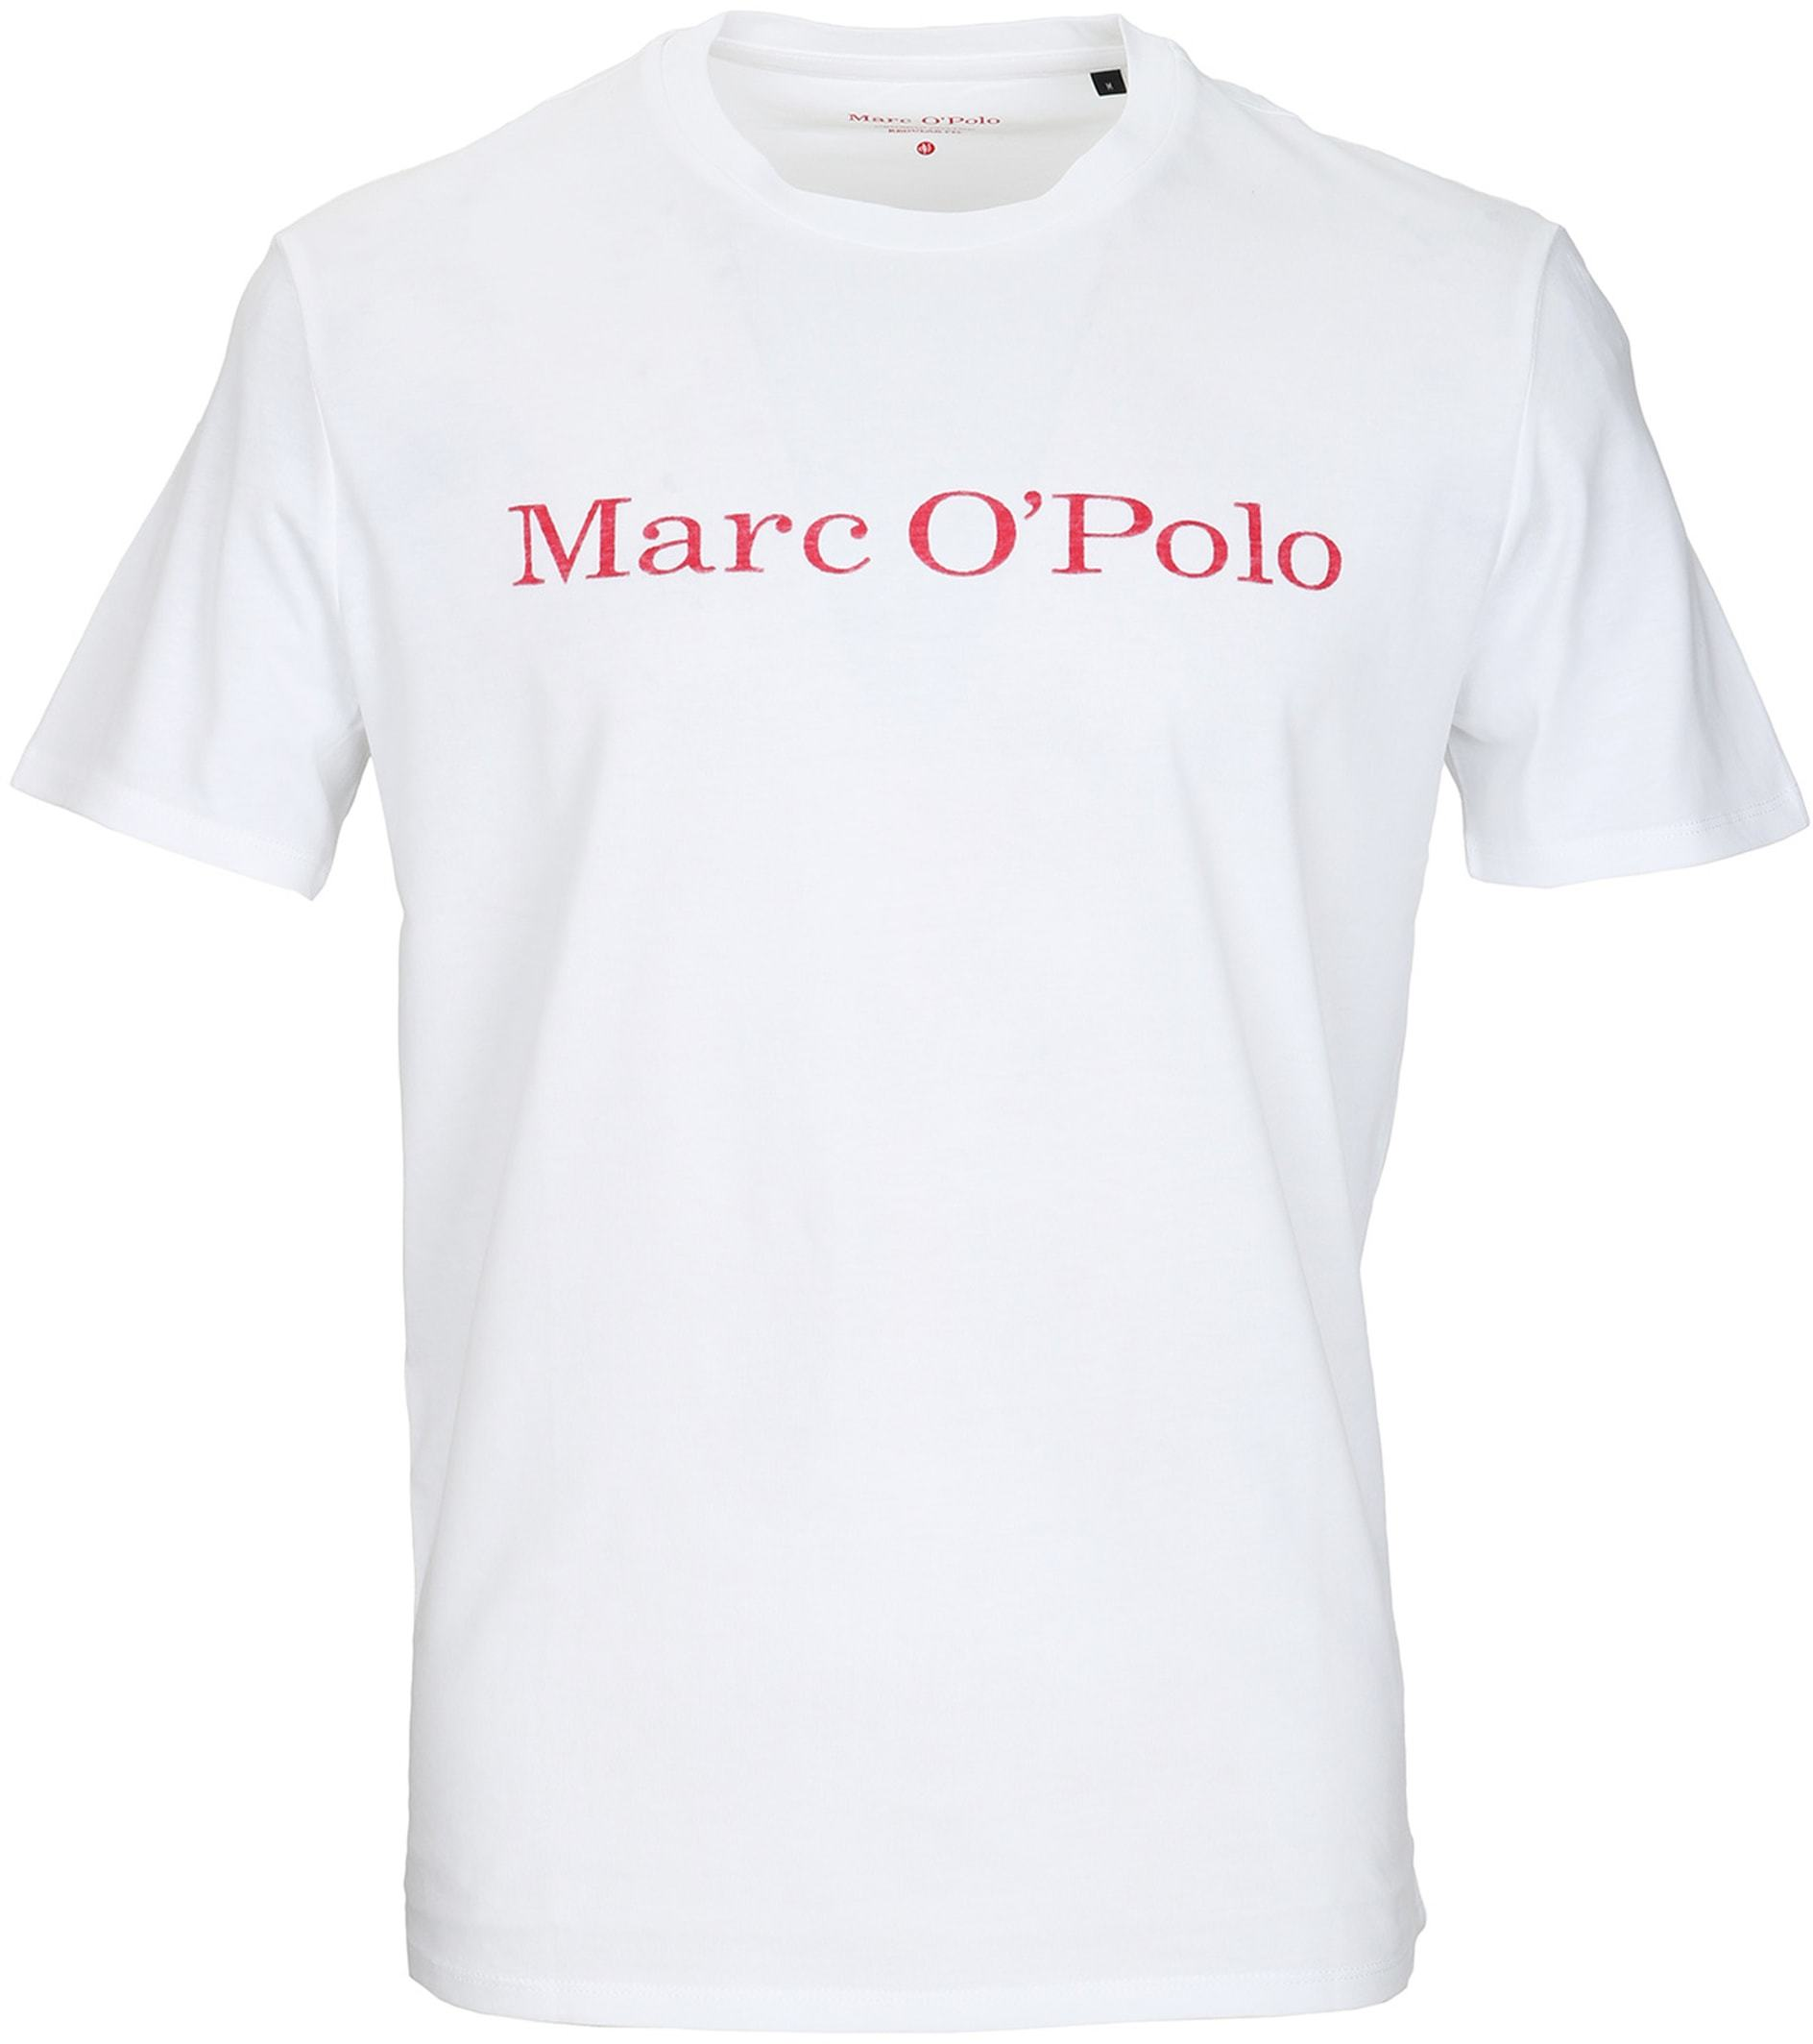 Marc O'Polo T-Shirt Weiß foto 0